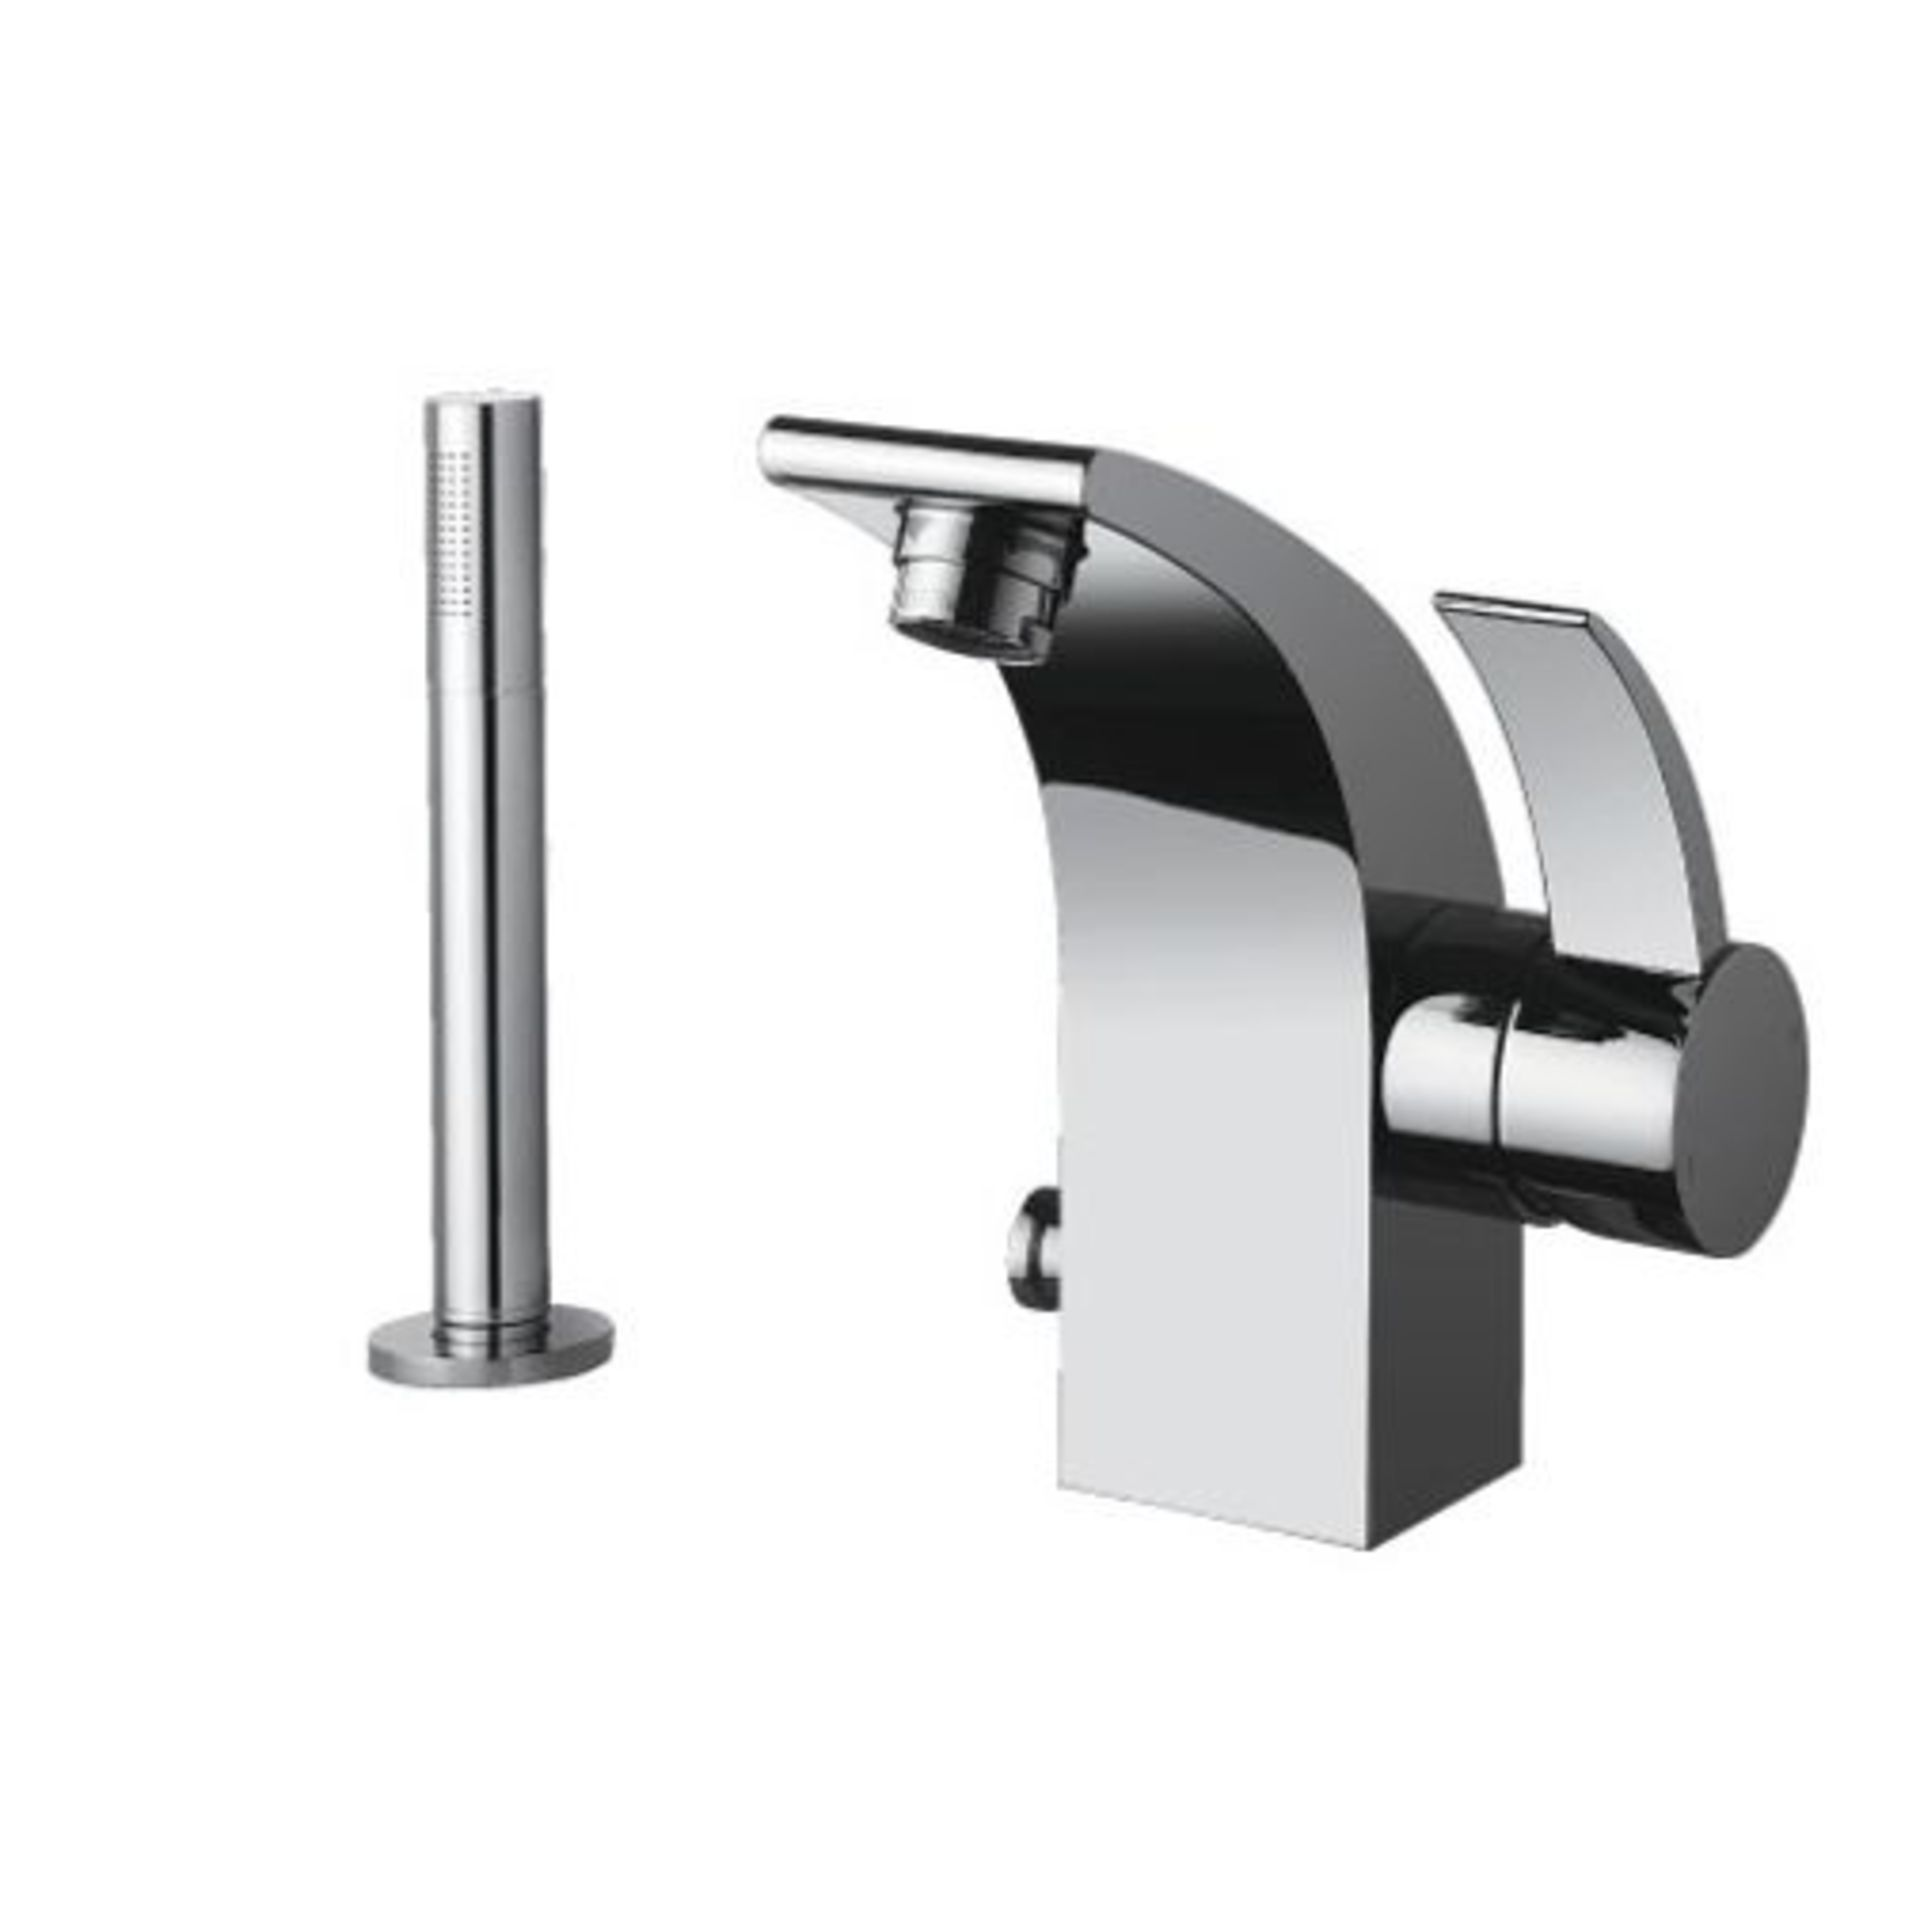 Lot 9 - Bathstore 'Sublime' very high quality, designer bath & shower mono mixer tap.